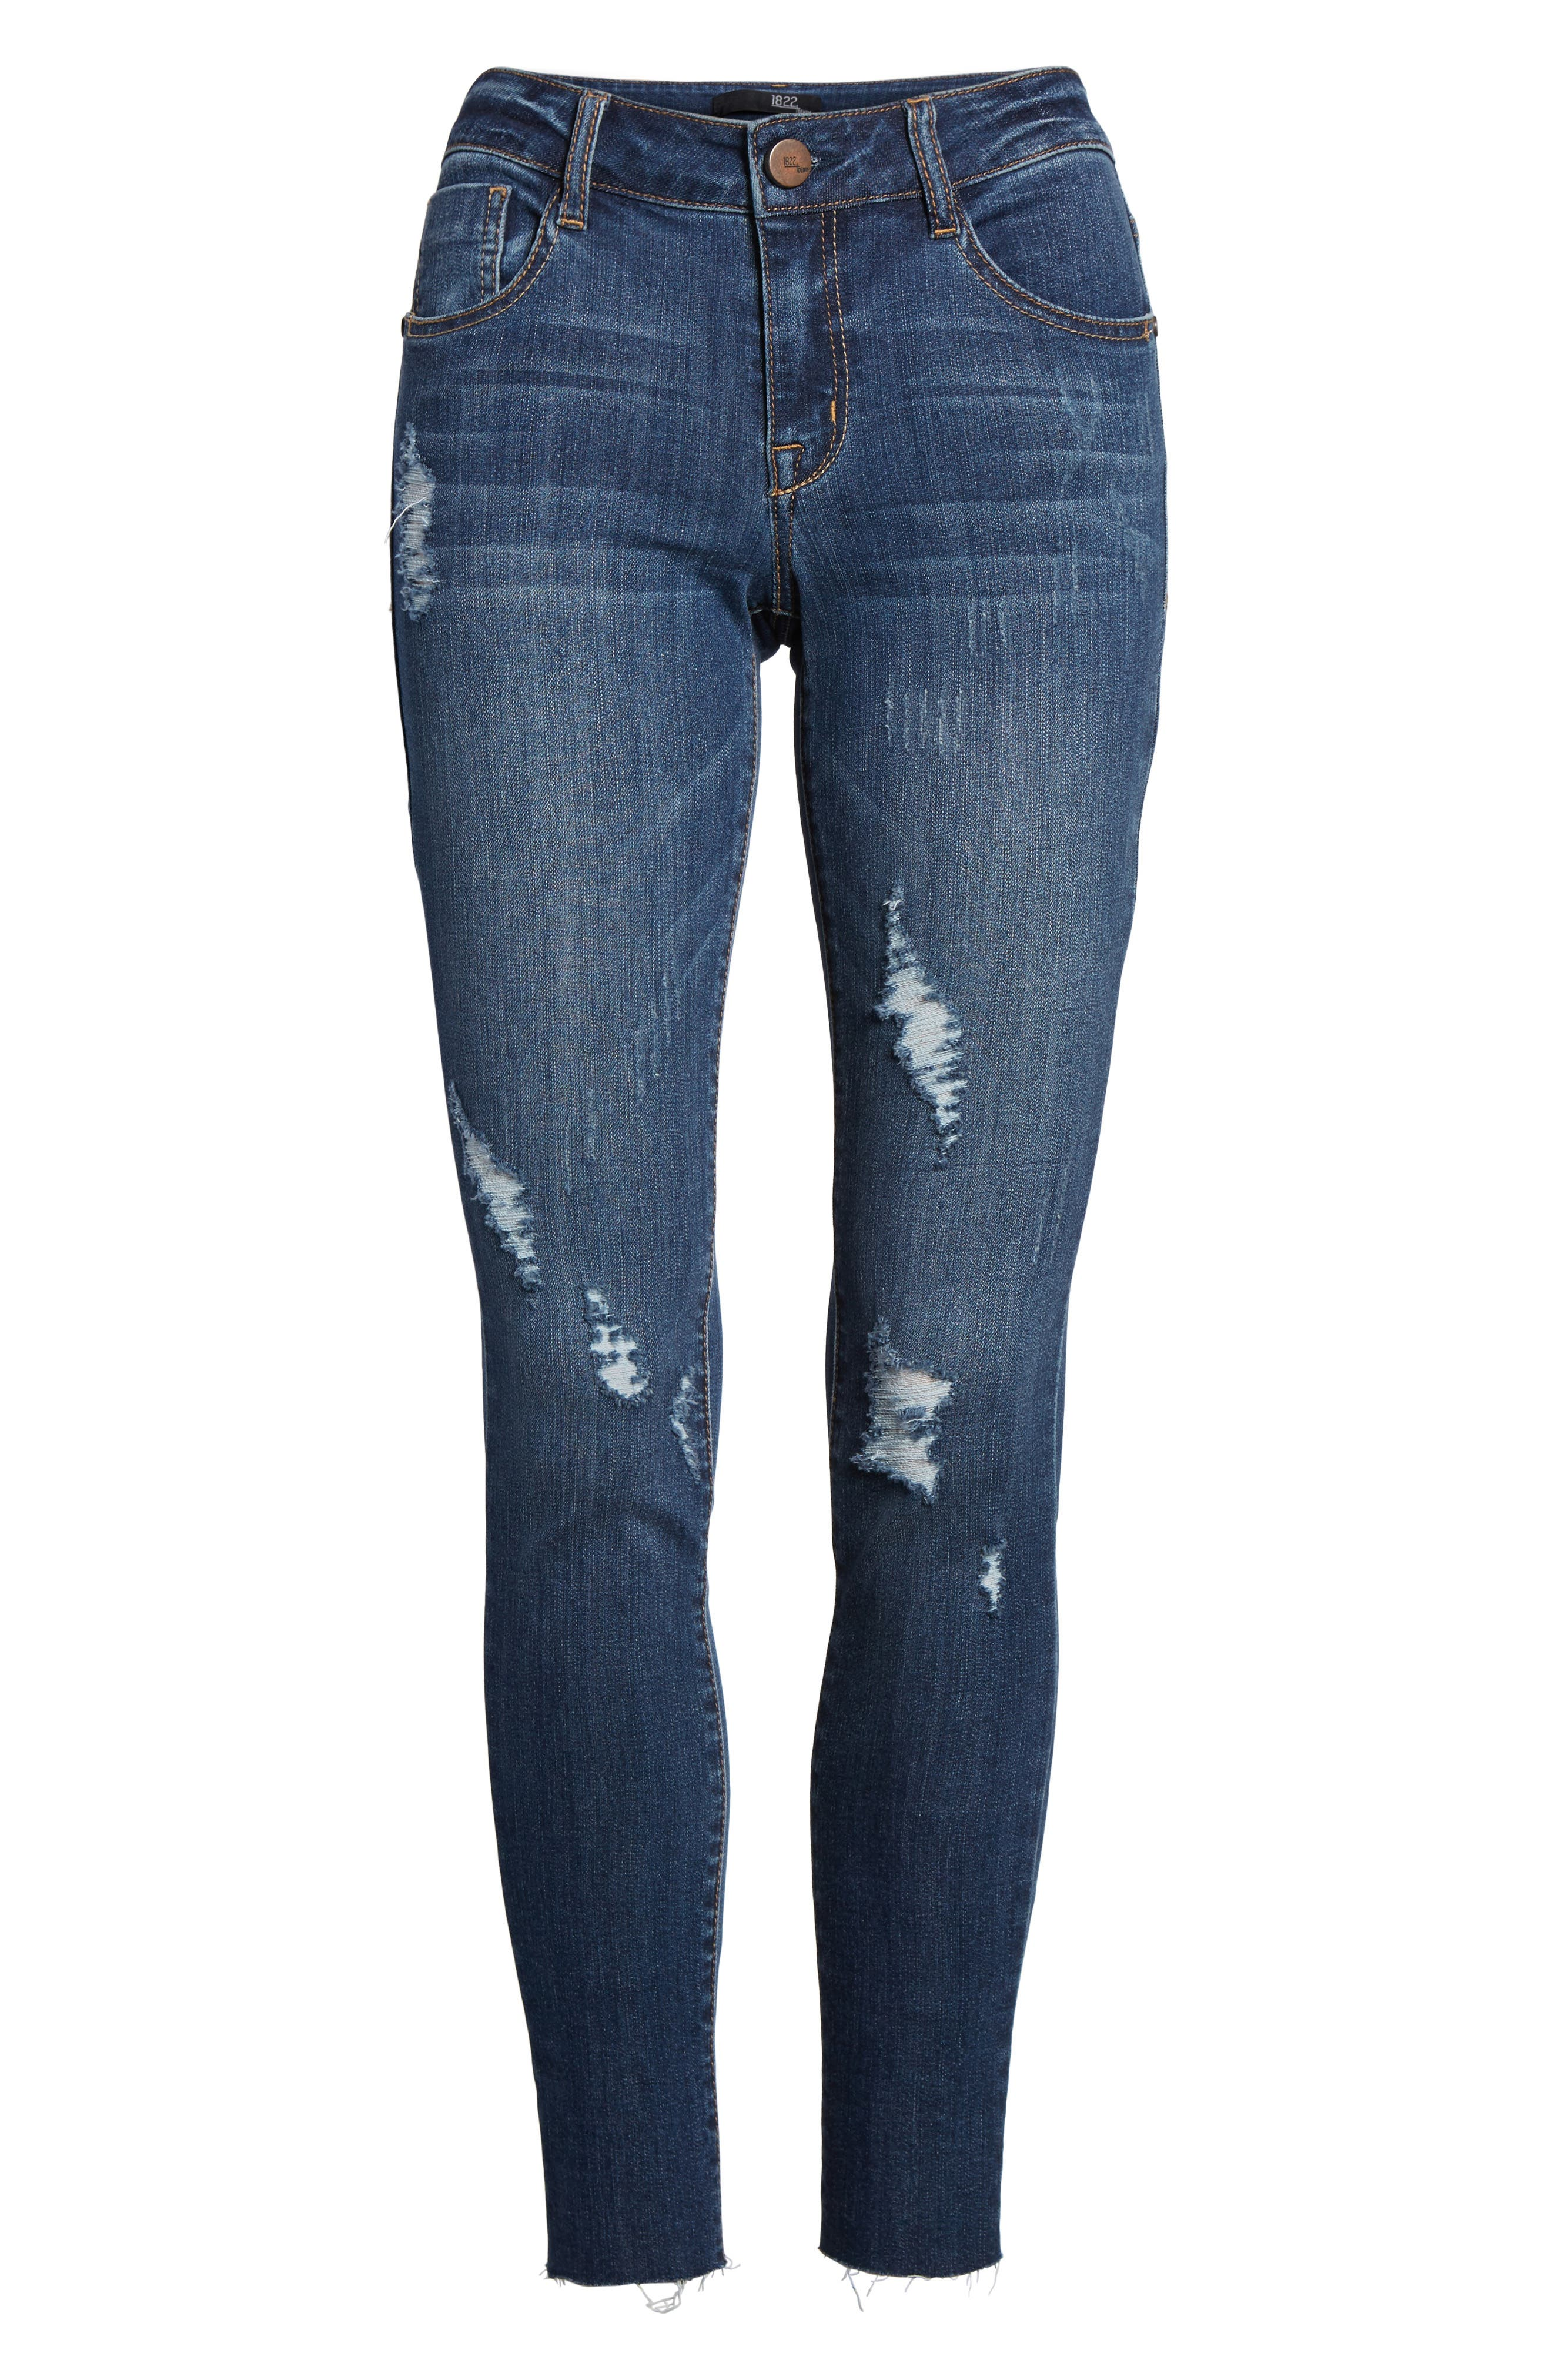 Decon Distressed Skinny Jeans,                             Alternate thumbnail 7, color,                             Wall Flowers Med Wash